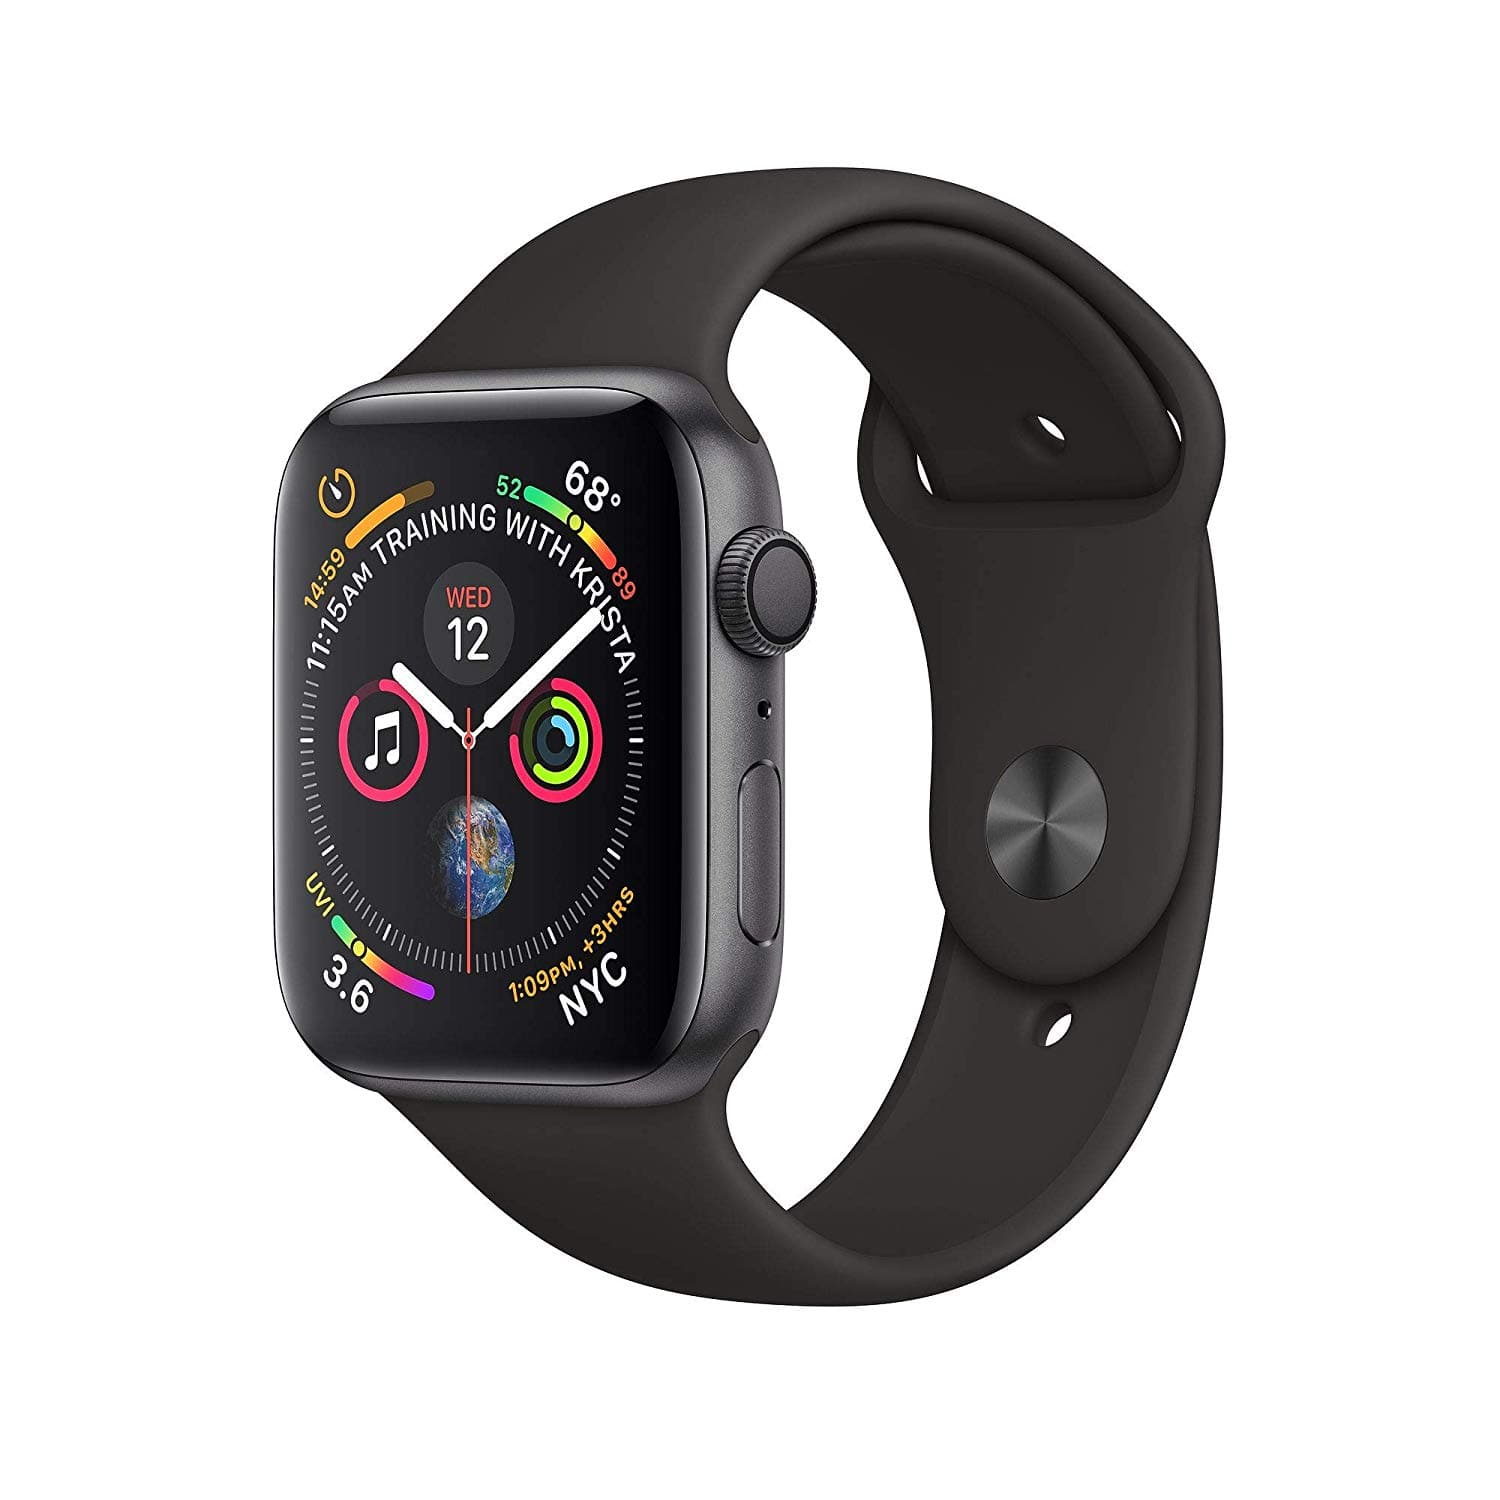 Amazon Warehouse: (Used-Good to Used-Very Good) Apple Watch Series 4 (GPS, 40mm) - Space Gray Aluminium Case with Black Sport Band $210.5